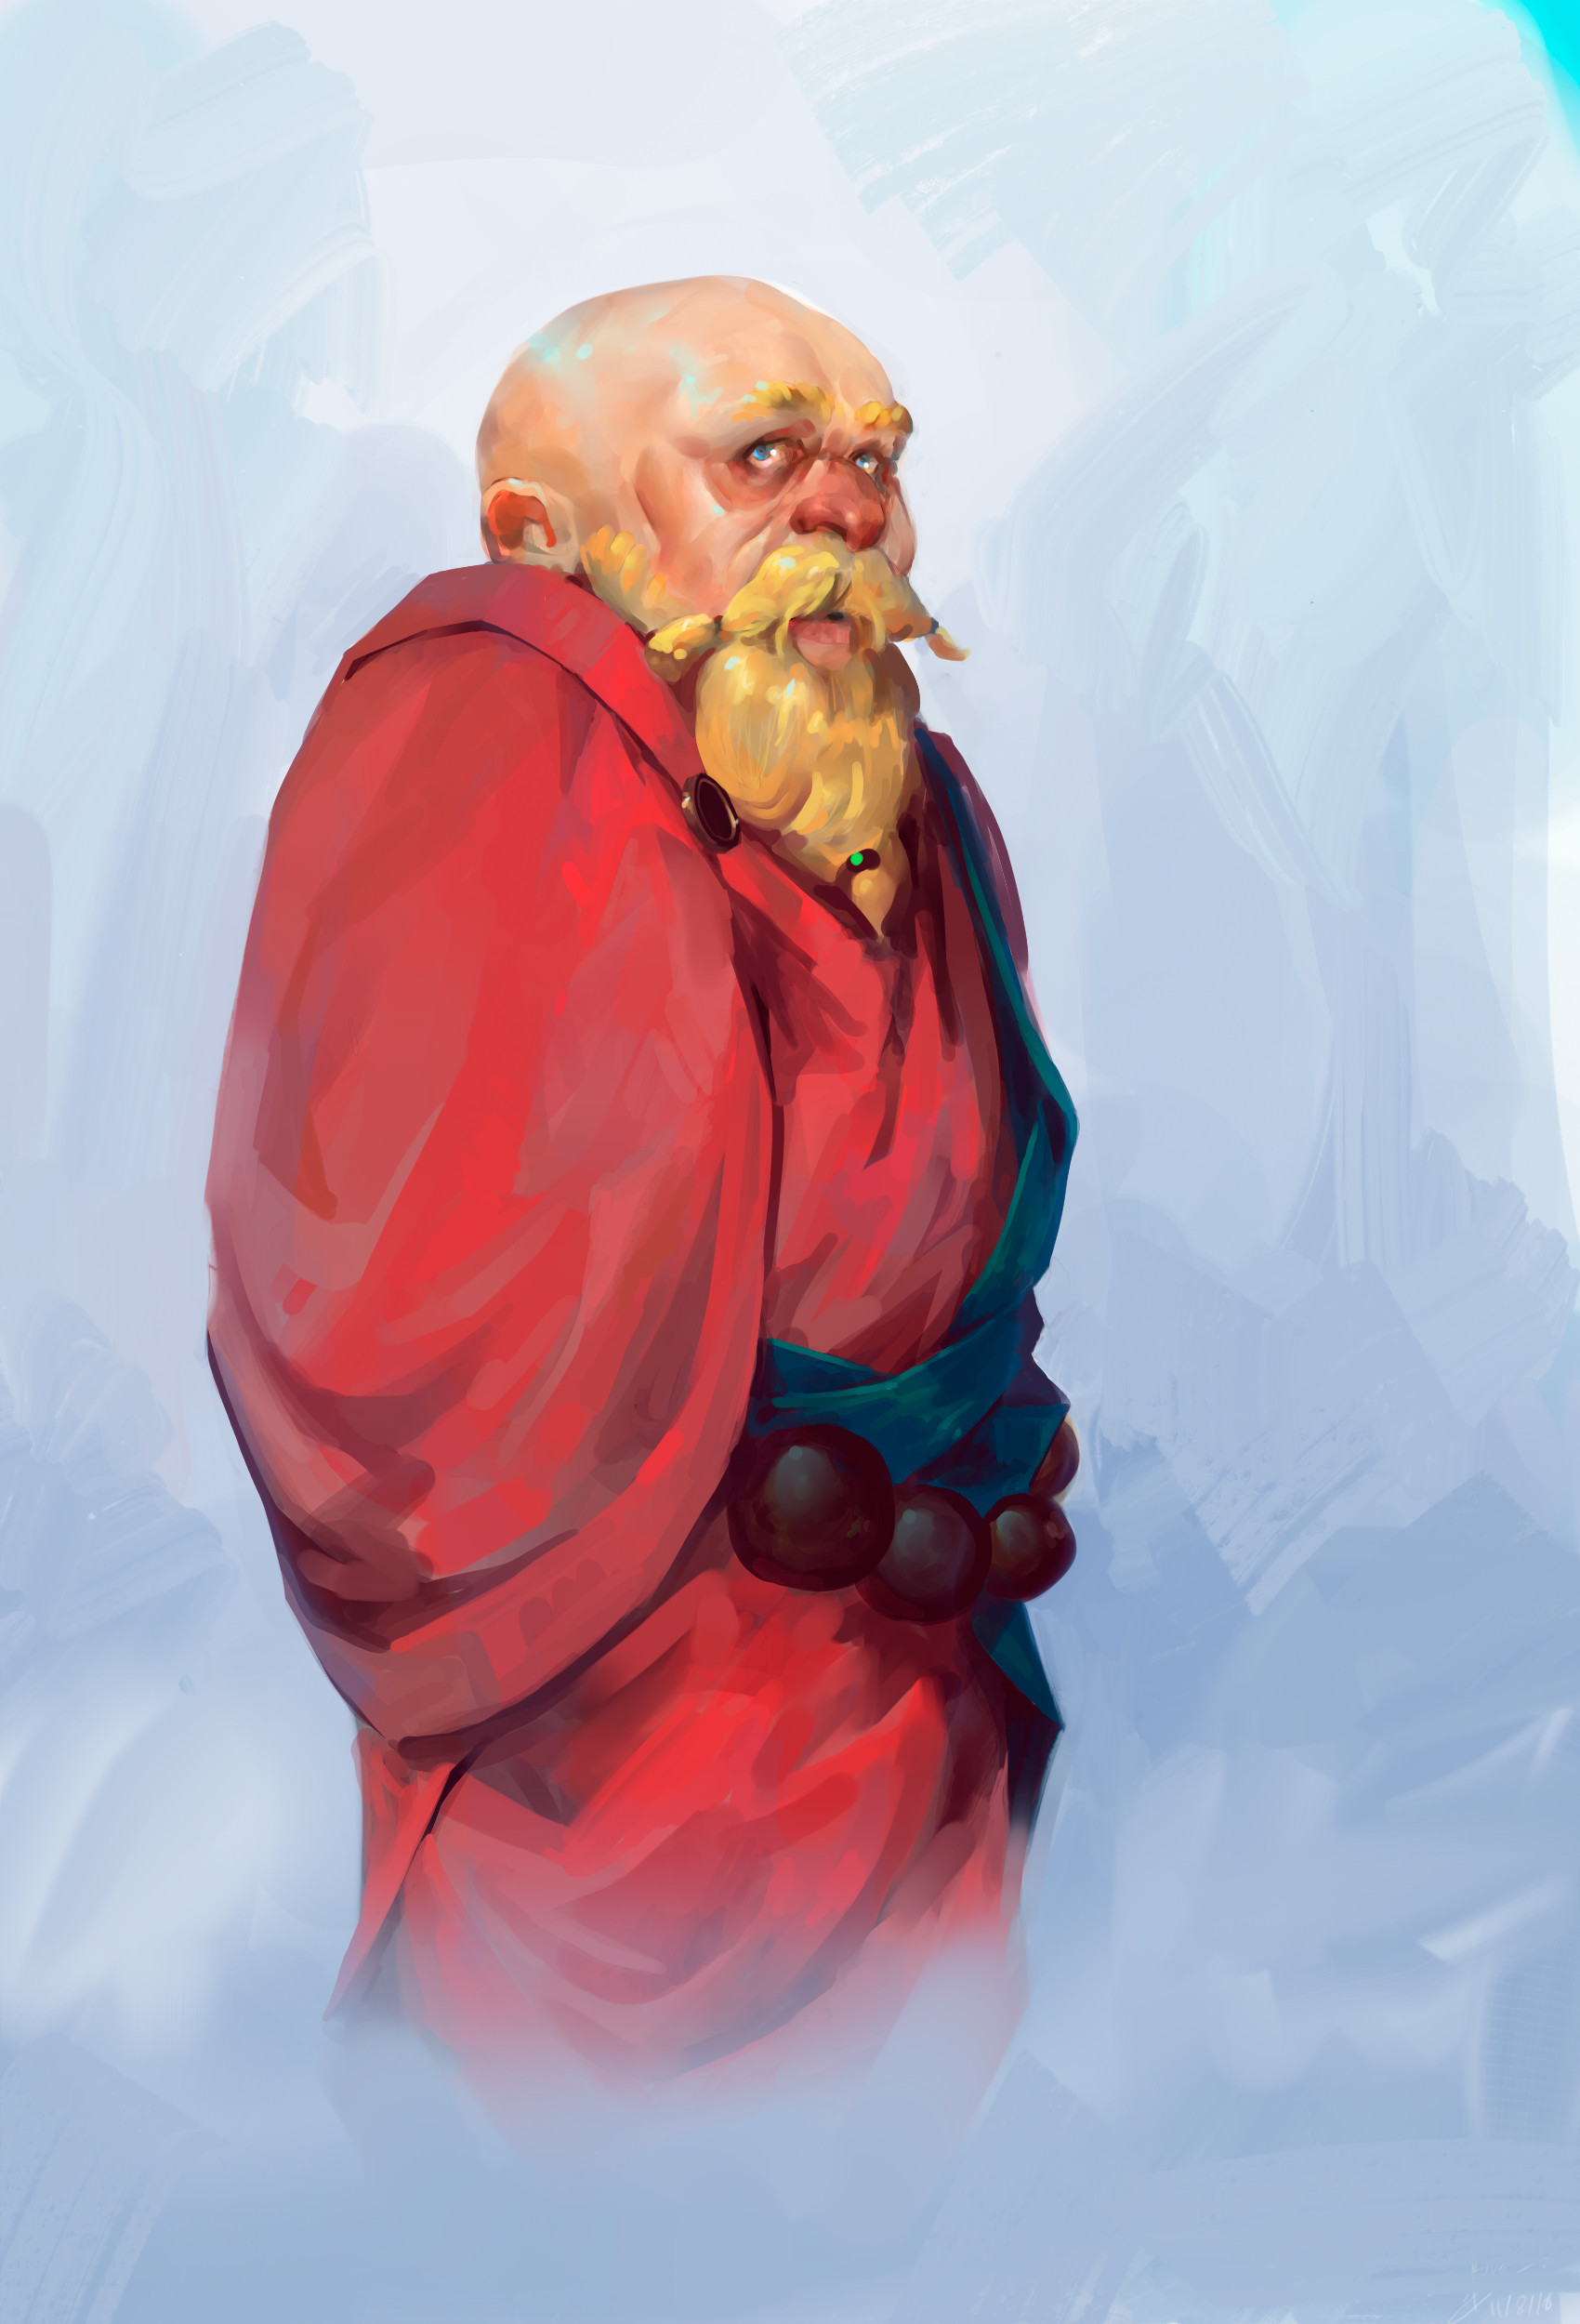 Pablo dominguez Digital painting concept art Monk